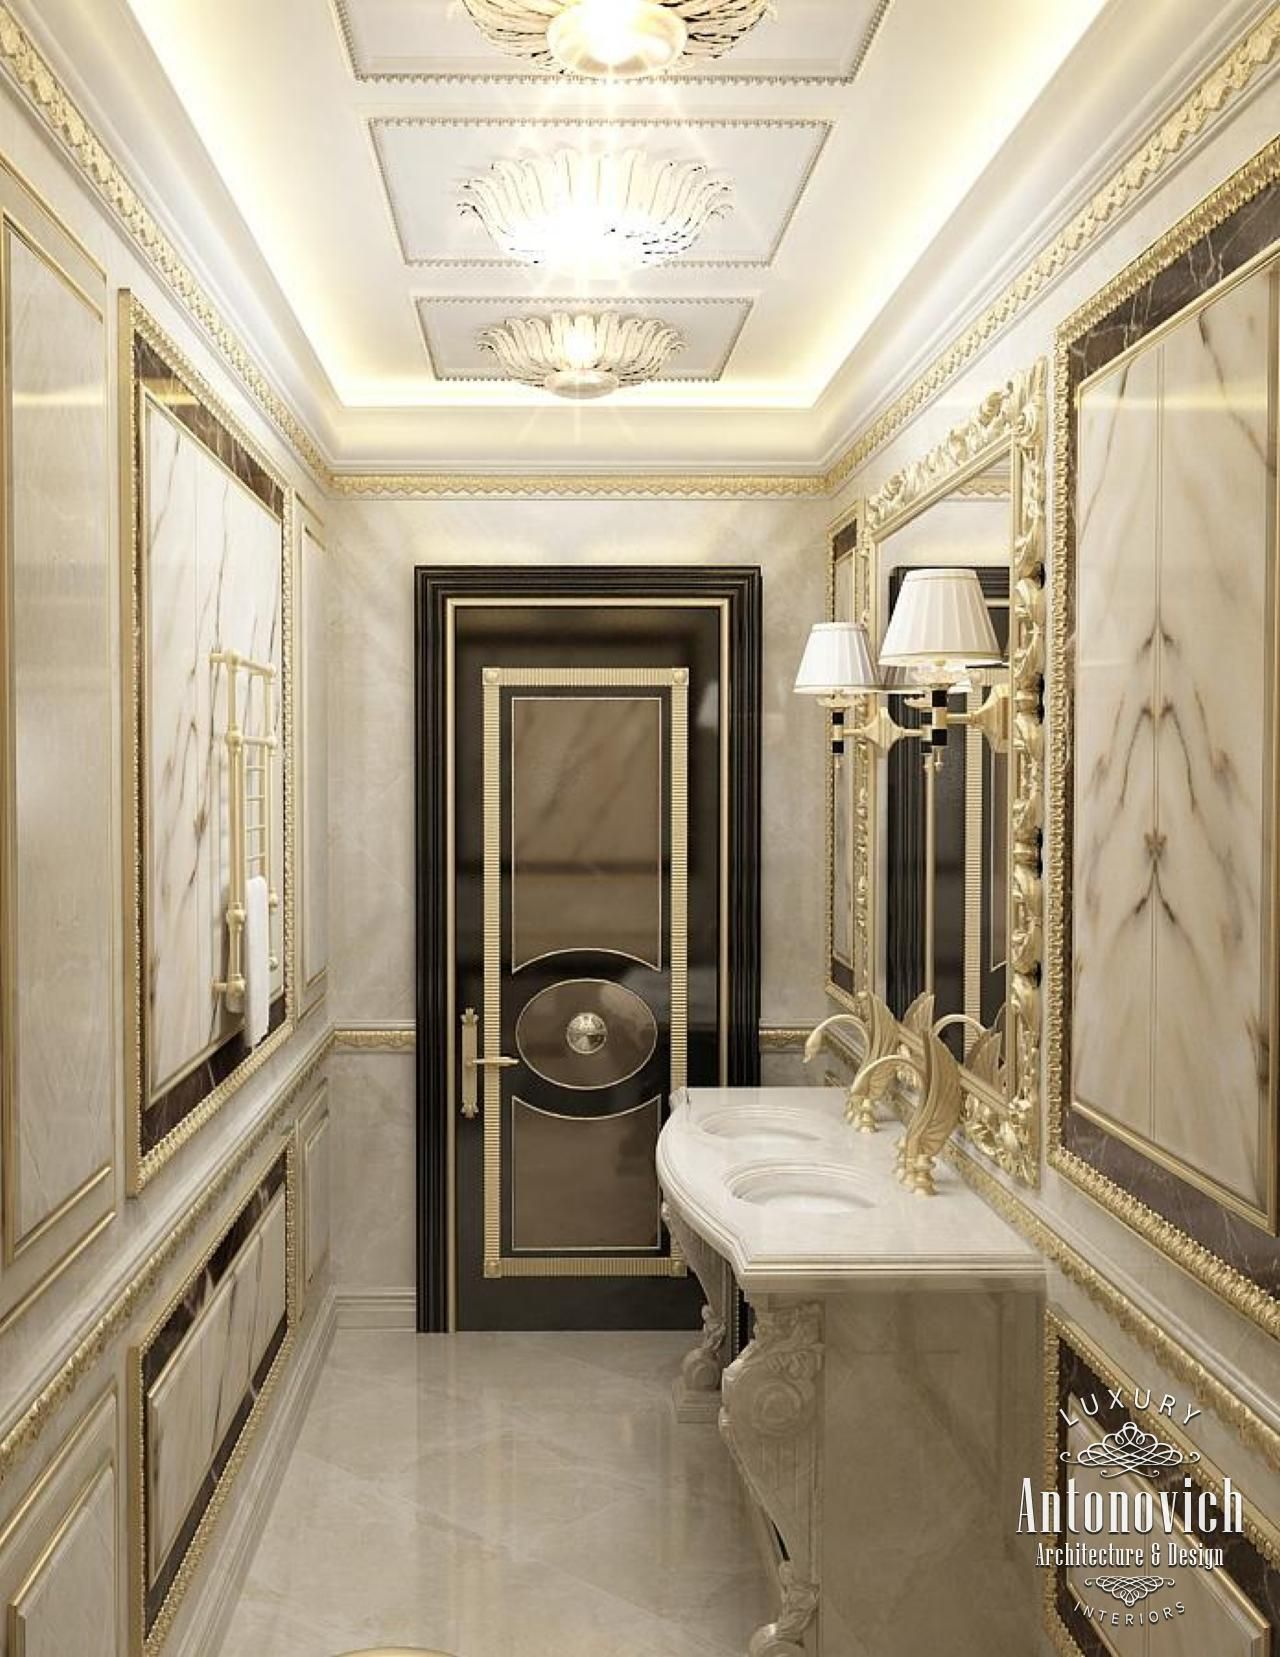 Luxury Interior Designers In Mumbai: Villa Interior Design In Dubai, Villa In Qatar, Photo 13